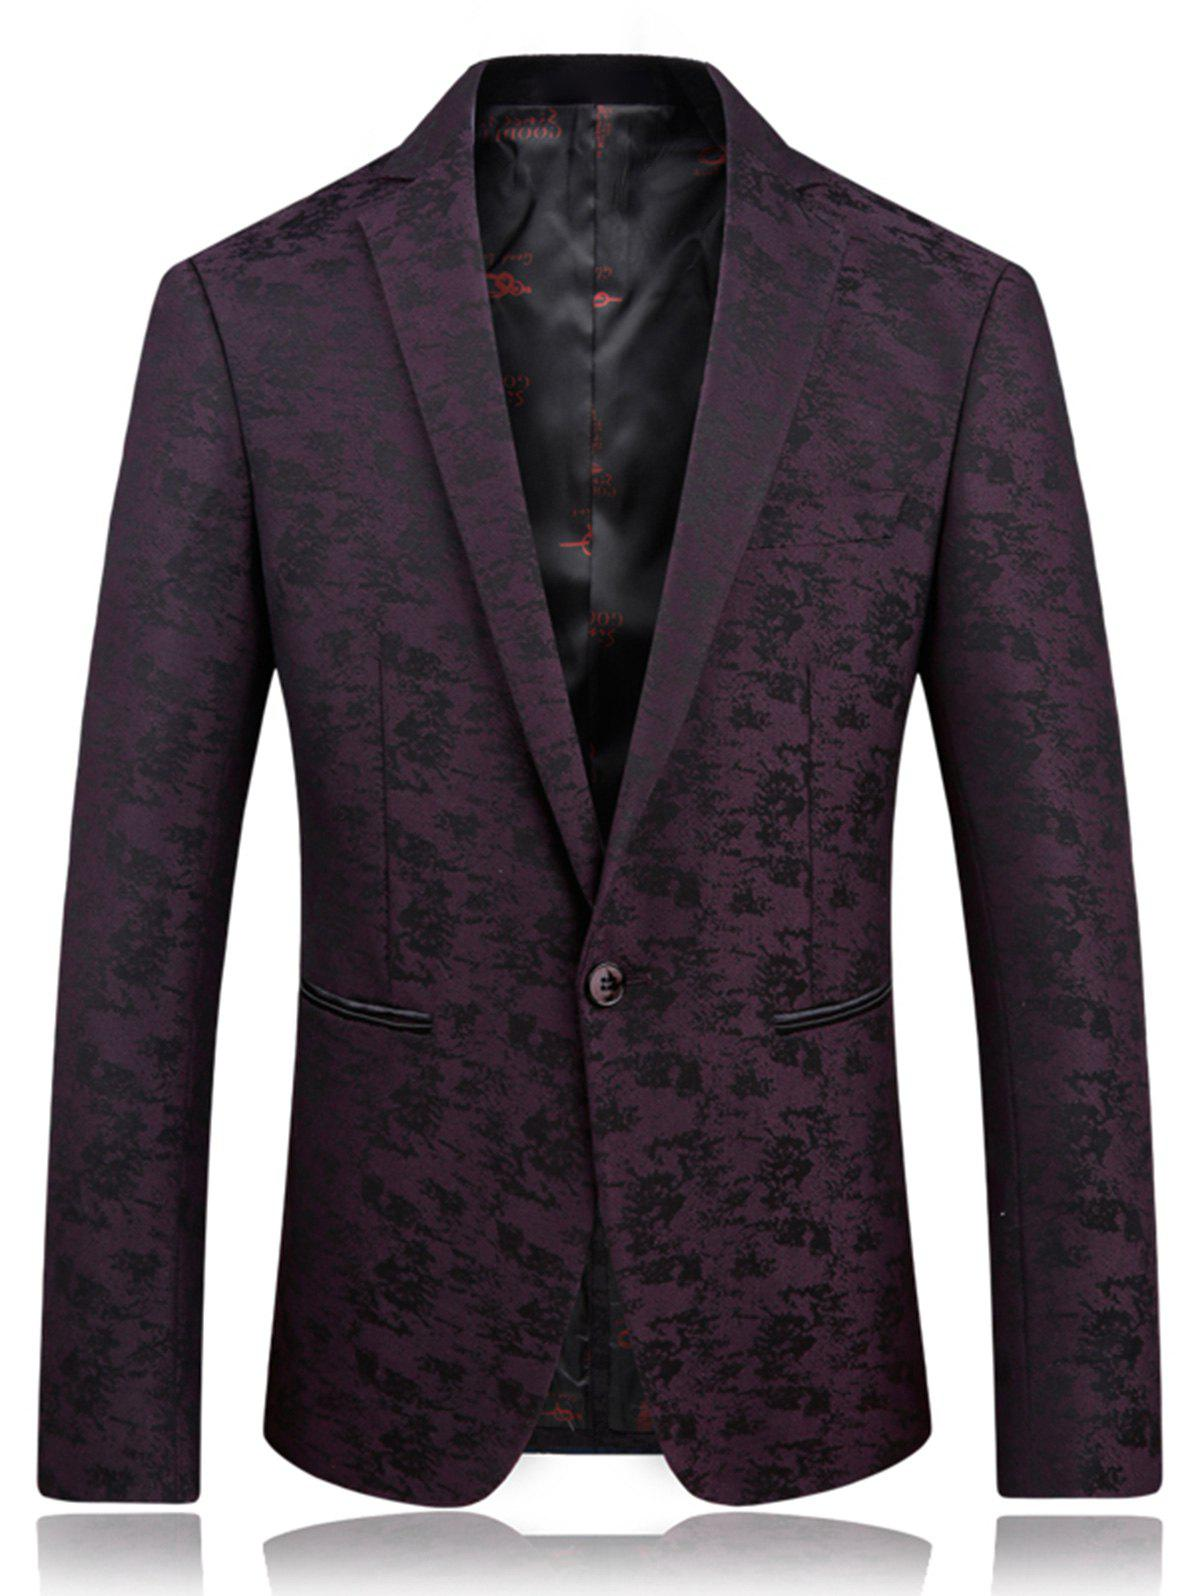 Lapel Jacquard Edging One Button Blazer - Violacé rouge XL